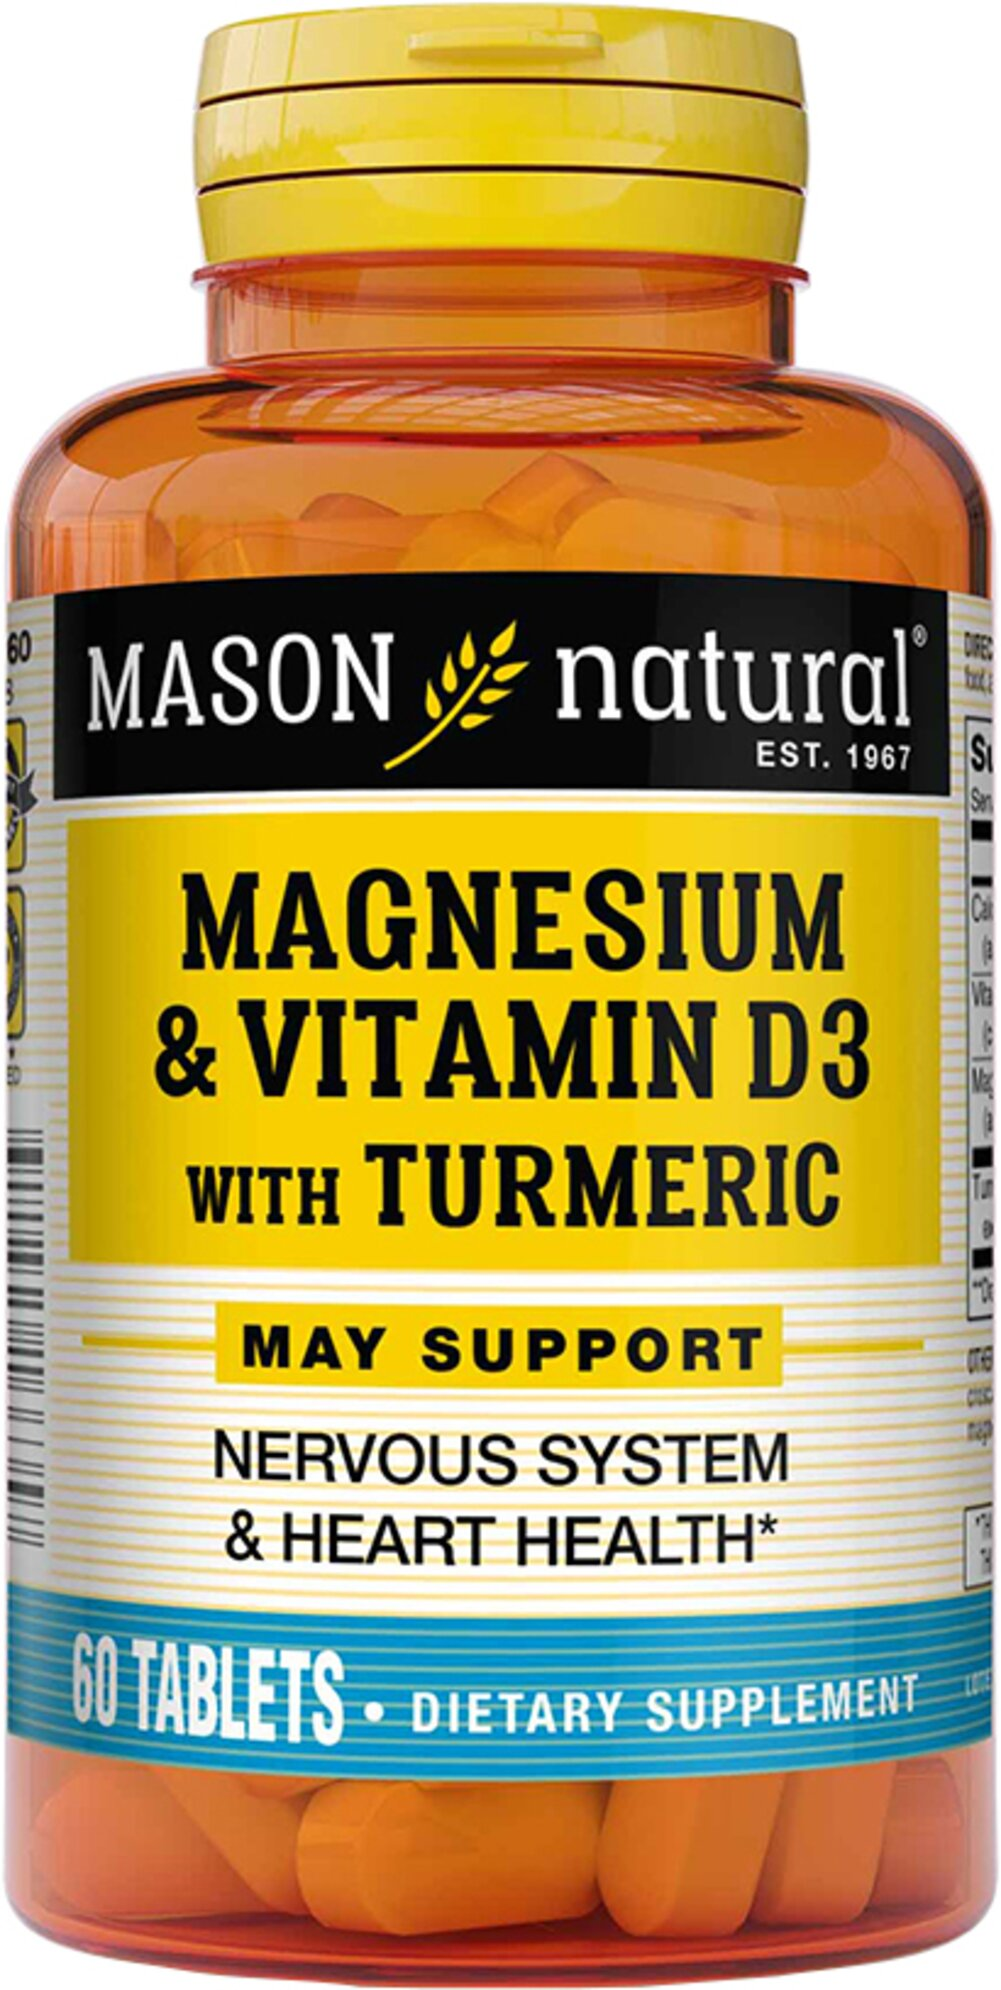 Magnesium with Vitamin D3 and Turmeric 500 mg / 3000 IU / 150 mg  60 Tablets  $11.99